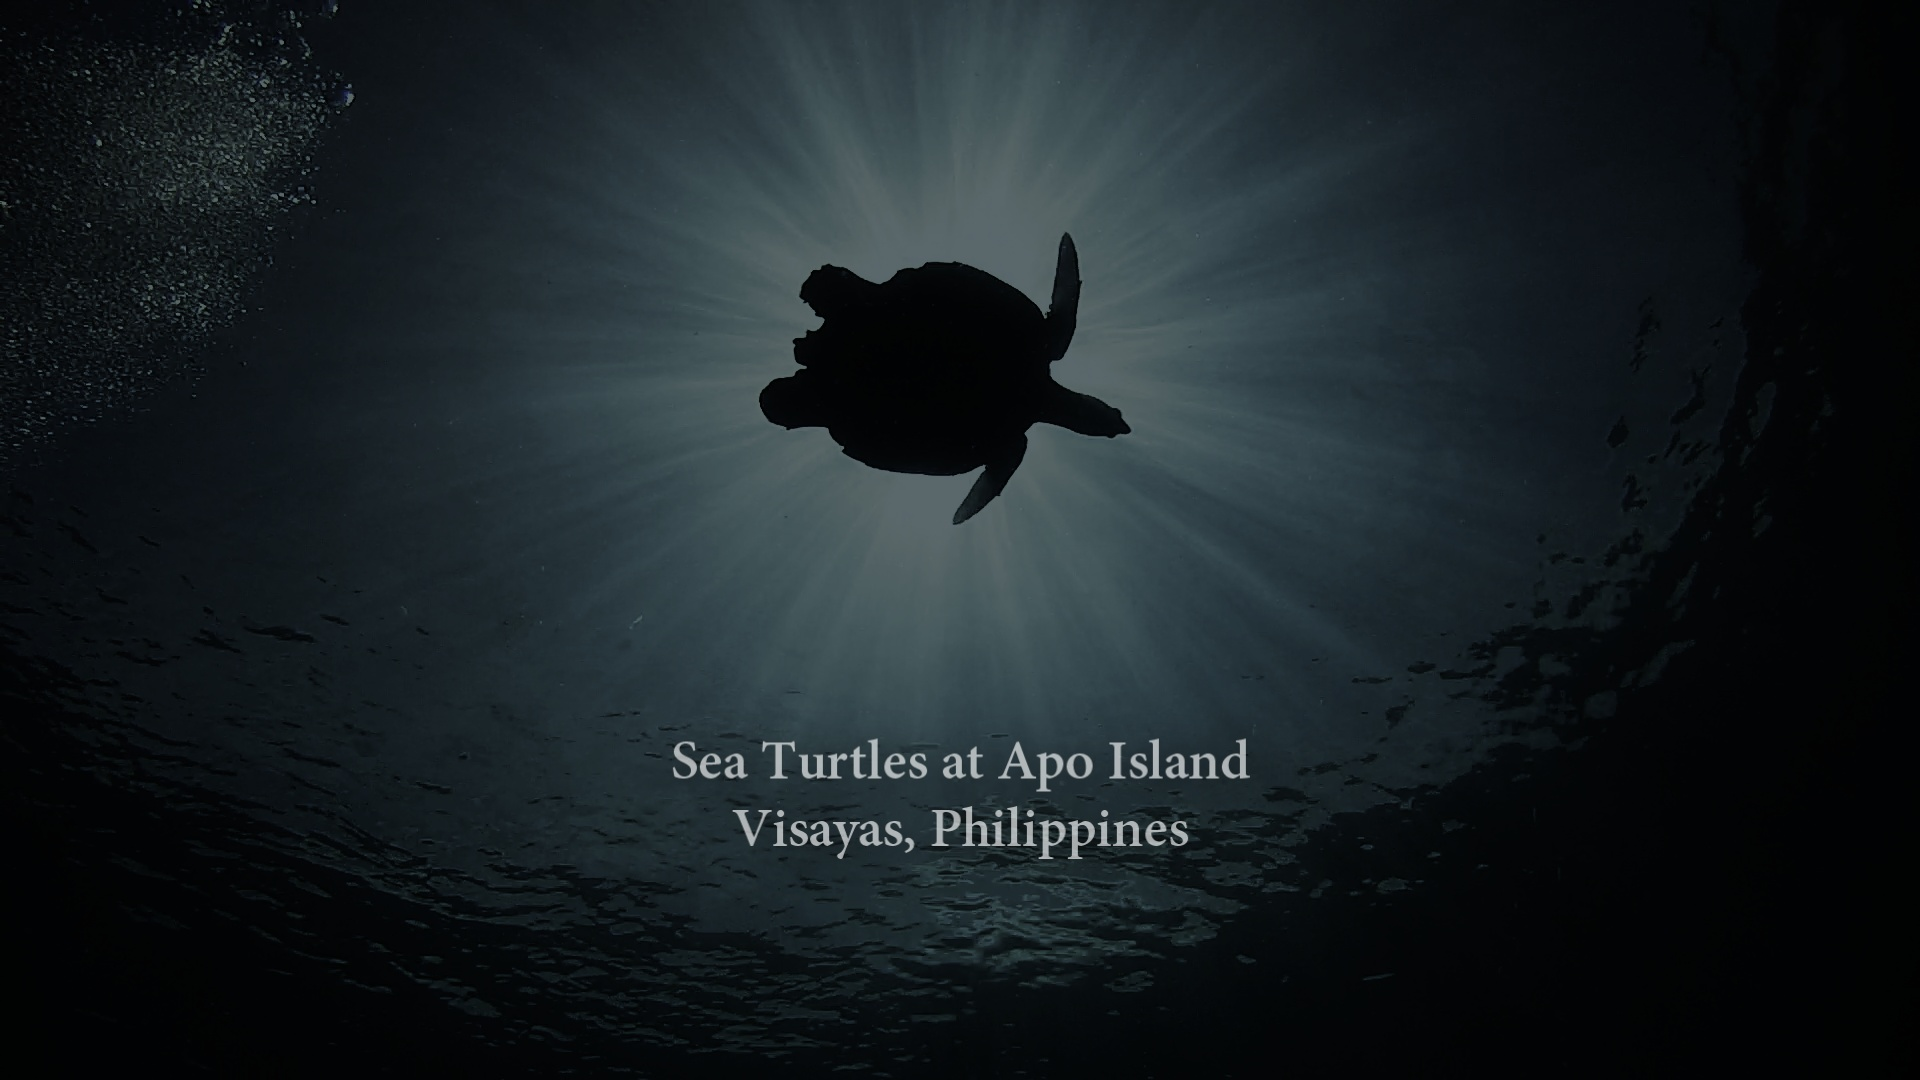 Sea Turtles at Apo Island